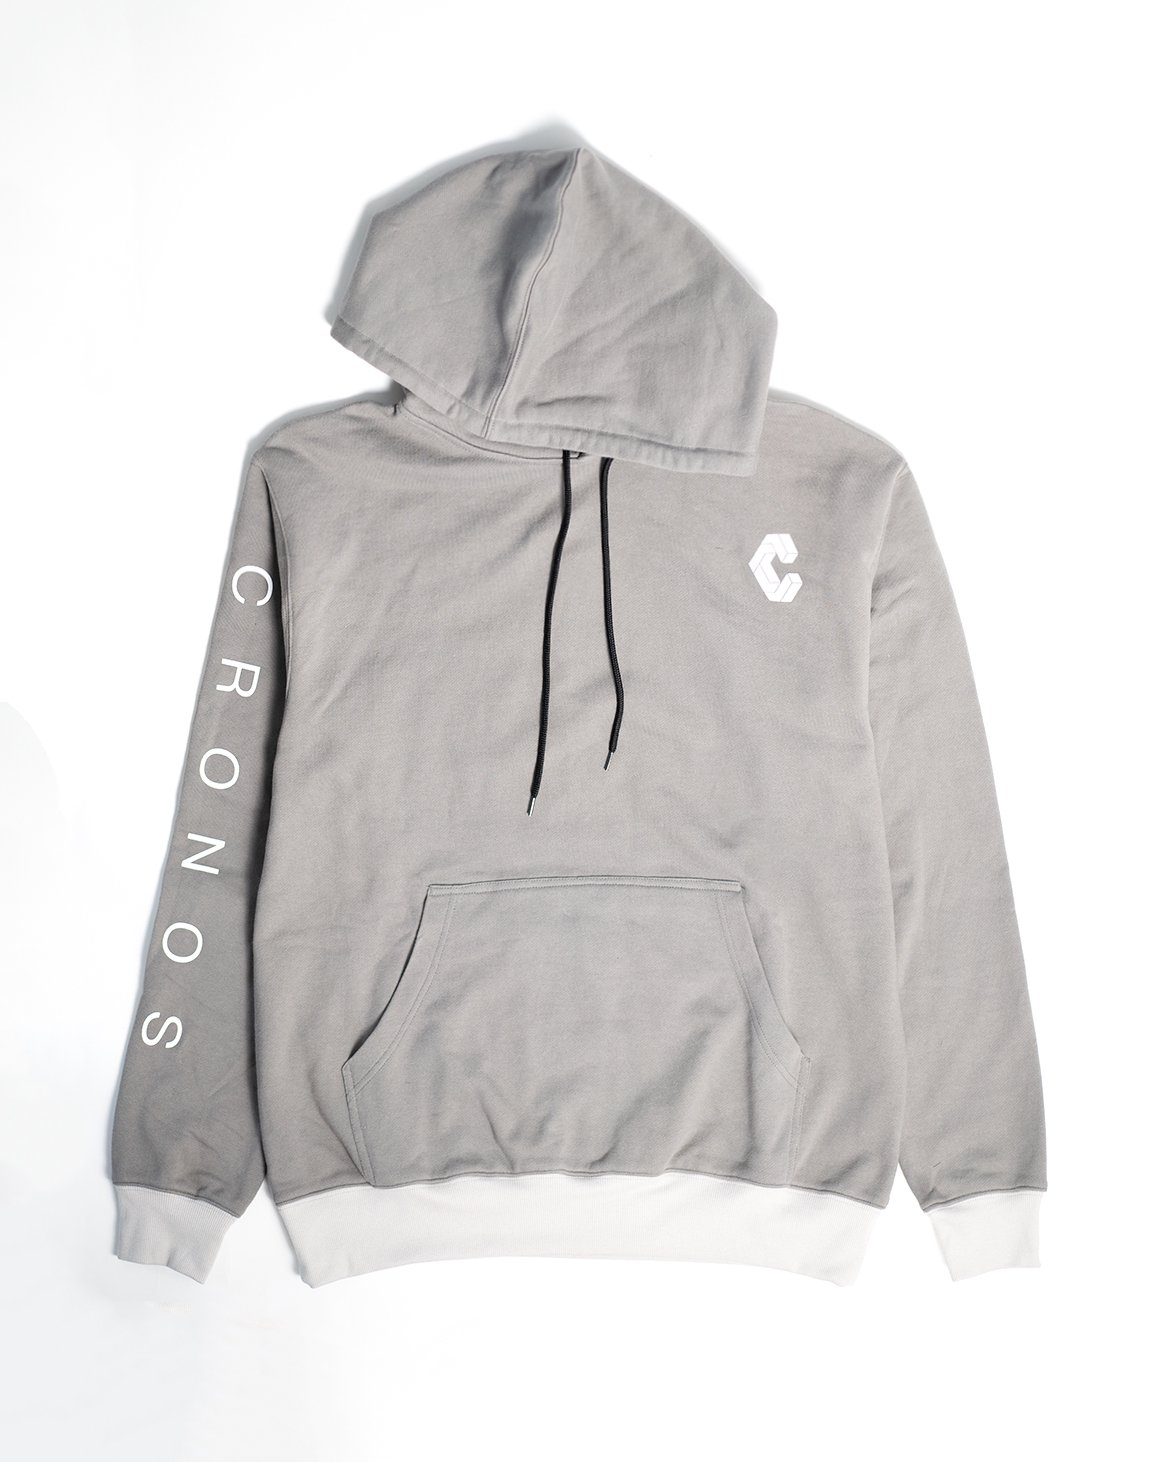 <img class='new_mark_img1' src='https://img.shop-pro.jp/img/new/icons1.gif' style='border:none;display:inline;margin:0px;padding:0px;width:auto;' />CRONOS ARM LOGO PARKA GRAY